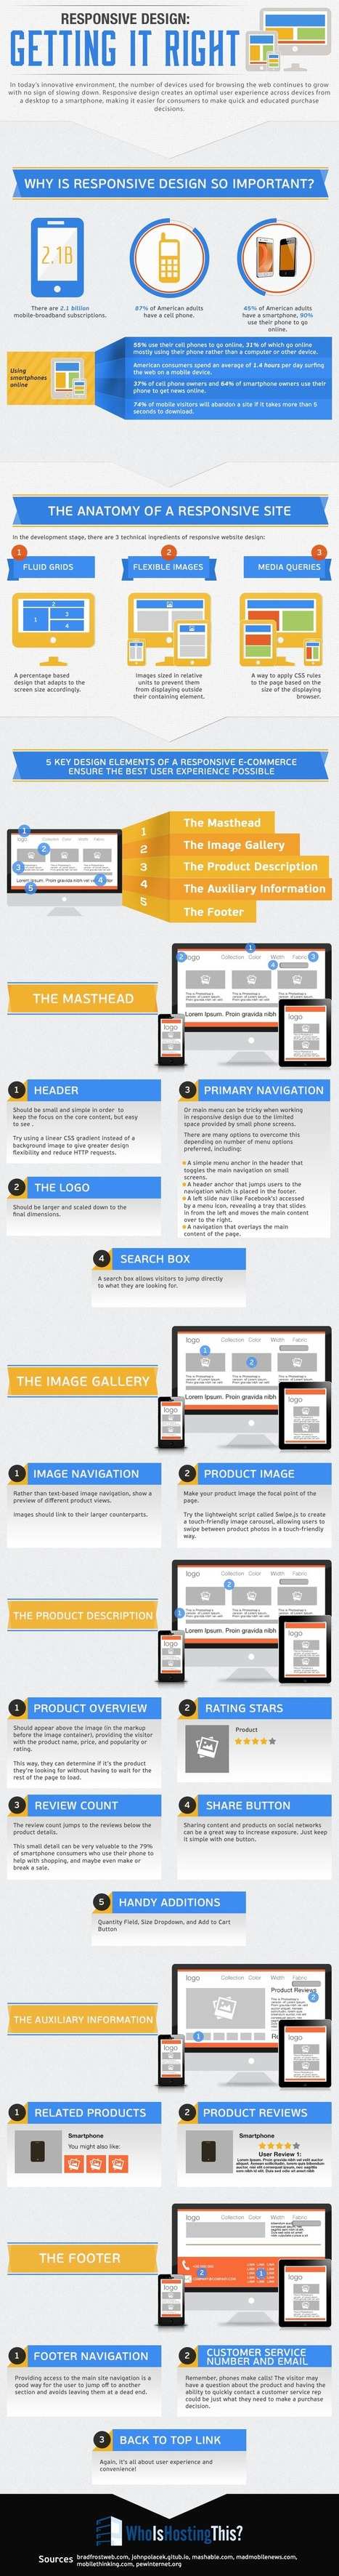 [INFOGRAPHIC] Responsive Design: Getting it right | web design | Scoop.it